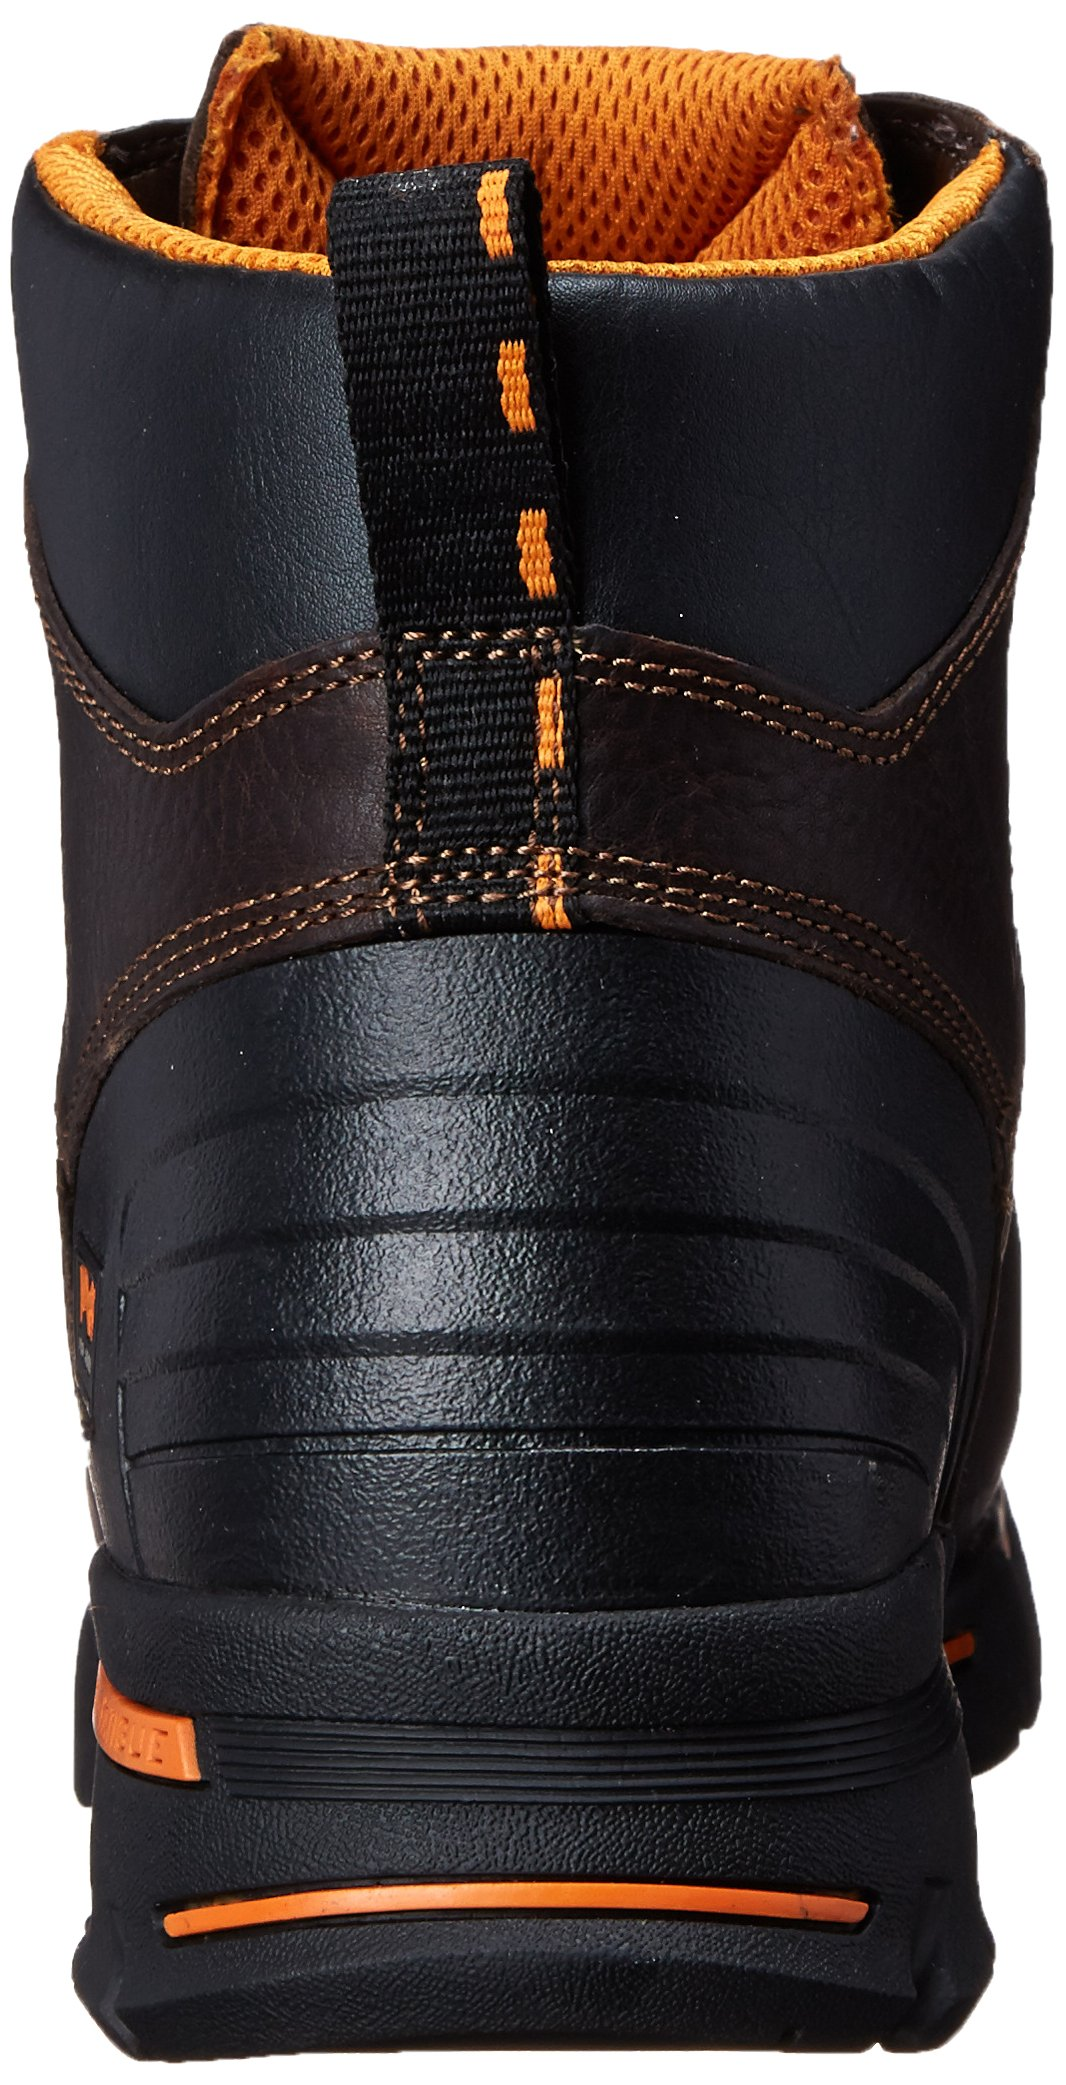 Timberland PRO Men's Endurance 6-Inch Soft Toe BR Work Boot,Briar,9.5 W US by Timberland PRO (Image #2)